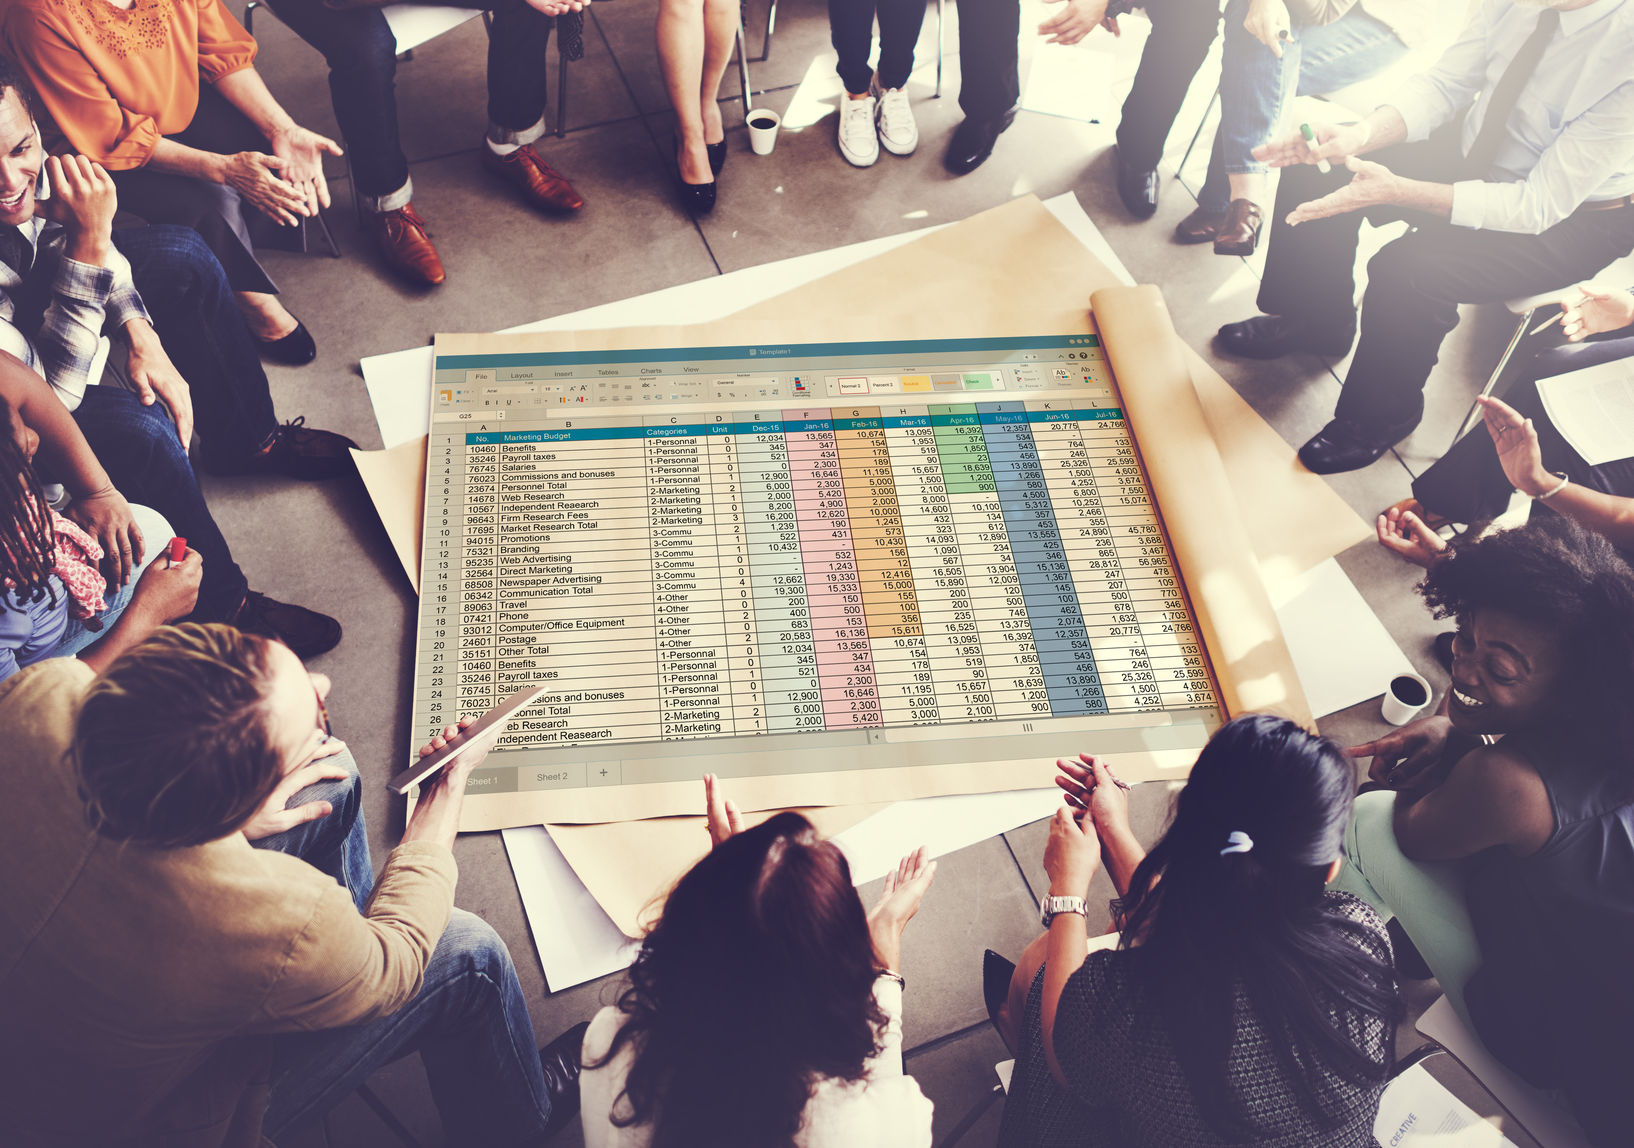 Are you still using Spreadsheets to Manage your team?